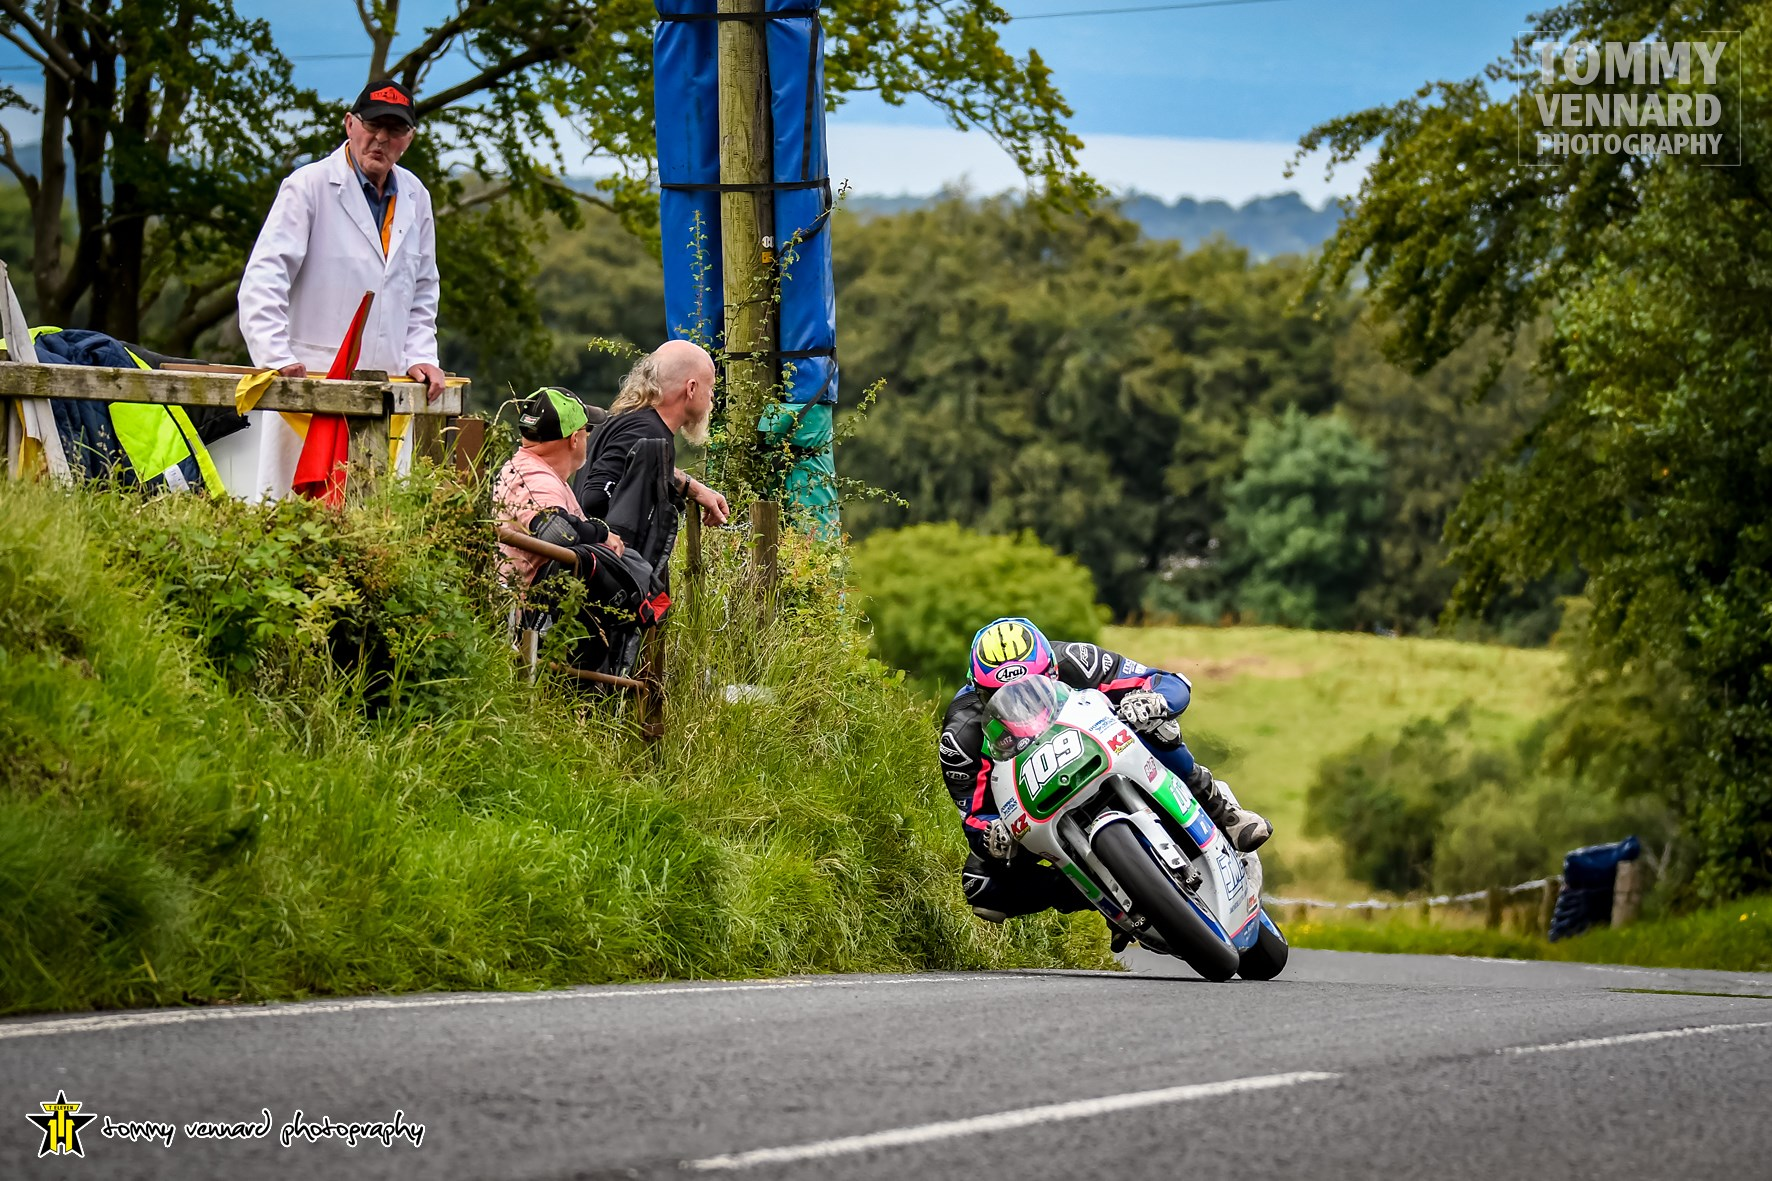 Armoy Latest: Lightweight Race Attracts Joint Sponsorship Package